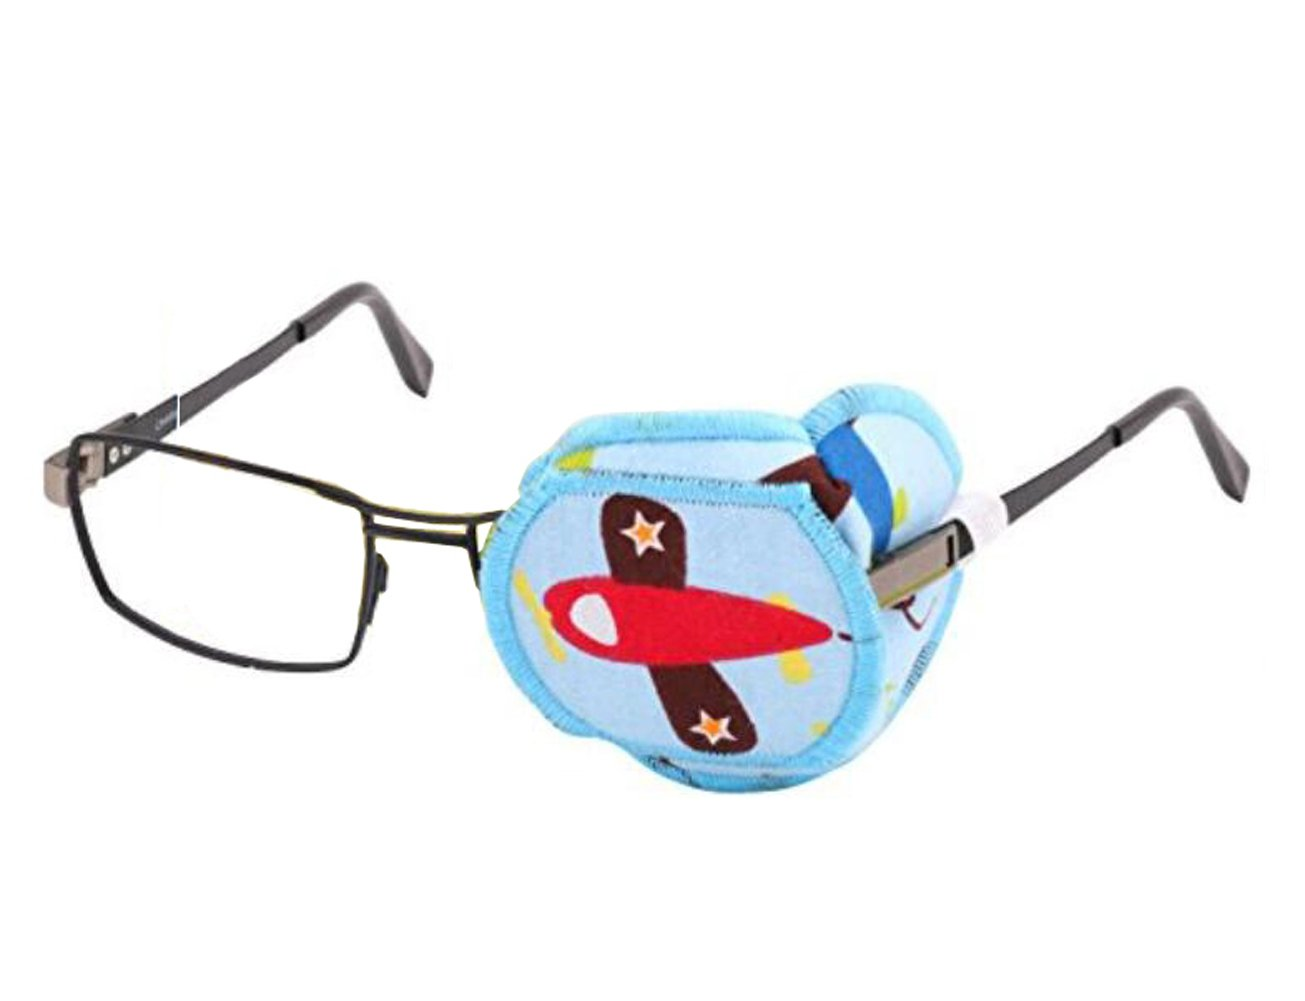 1PCS Pure Cotton Reusable Eye Patch Cartoon Amblyopia Eye Patches For Glasses Treat Lazy Eye and Strabismus For Kids Children,Vision Care Eye Mask (Left Eye)